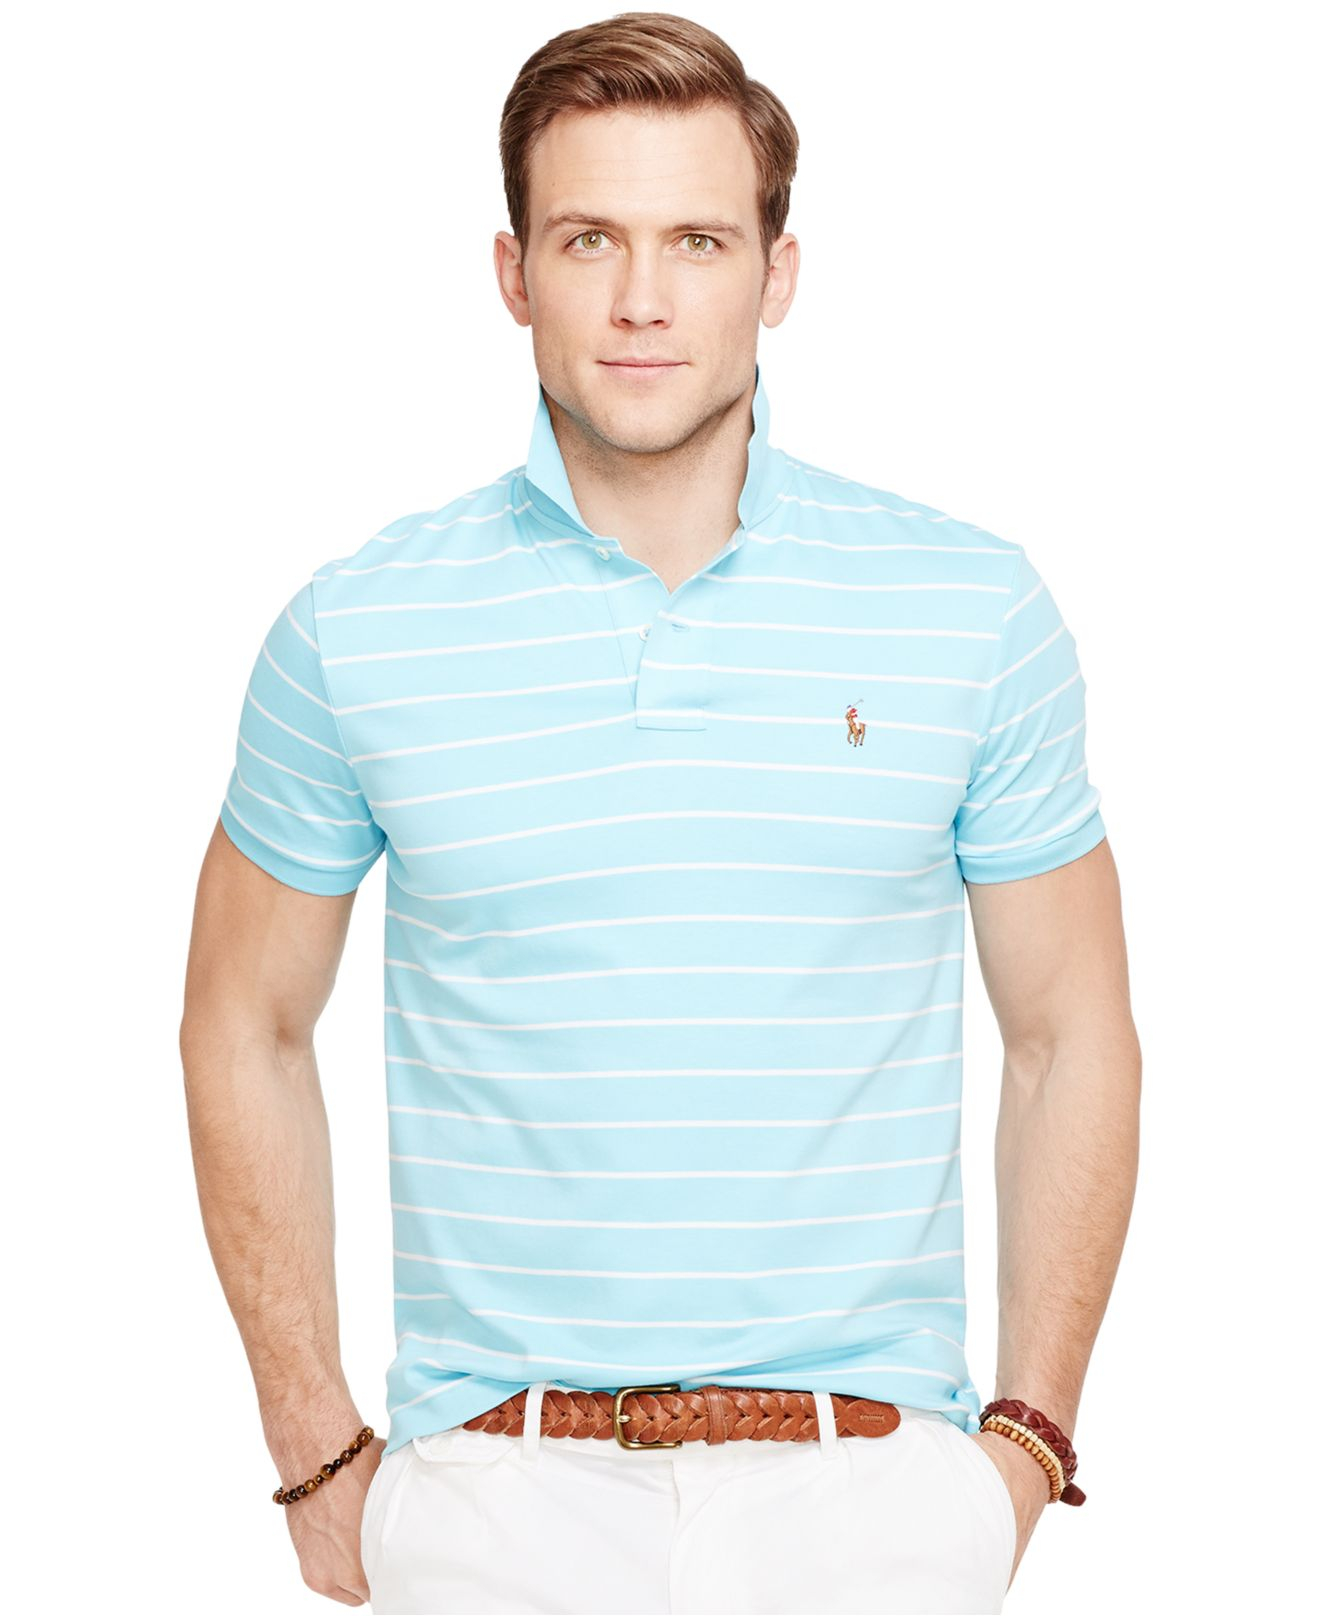 5b7c8826 Polo Ralph Lauren Striped Pima Soft-touch Polo Shirt in Blue for Men ...